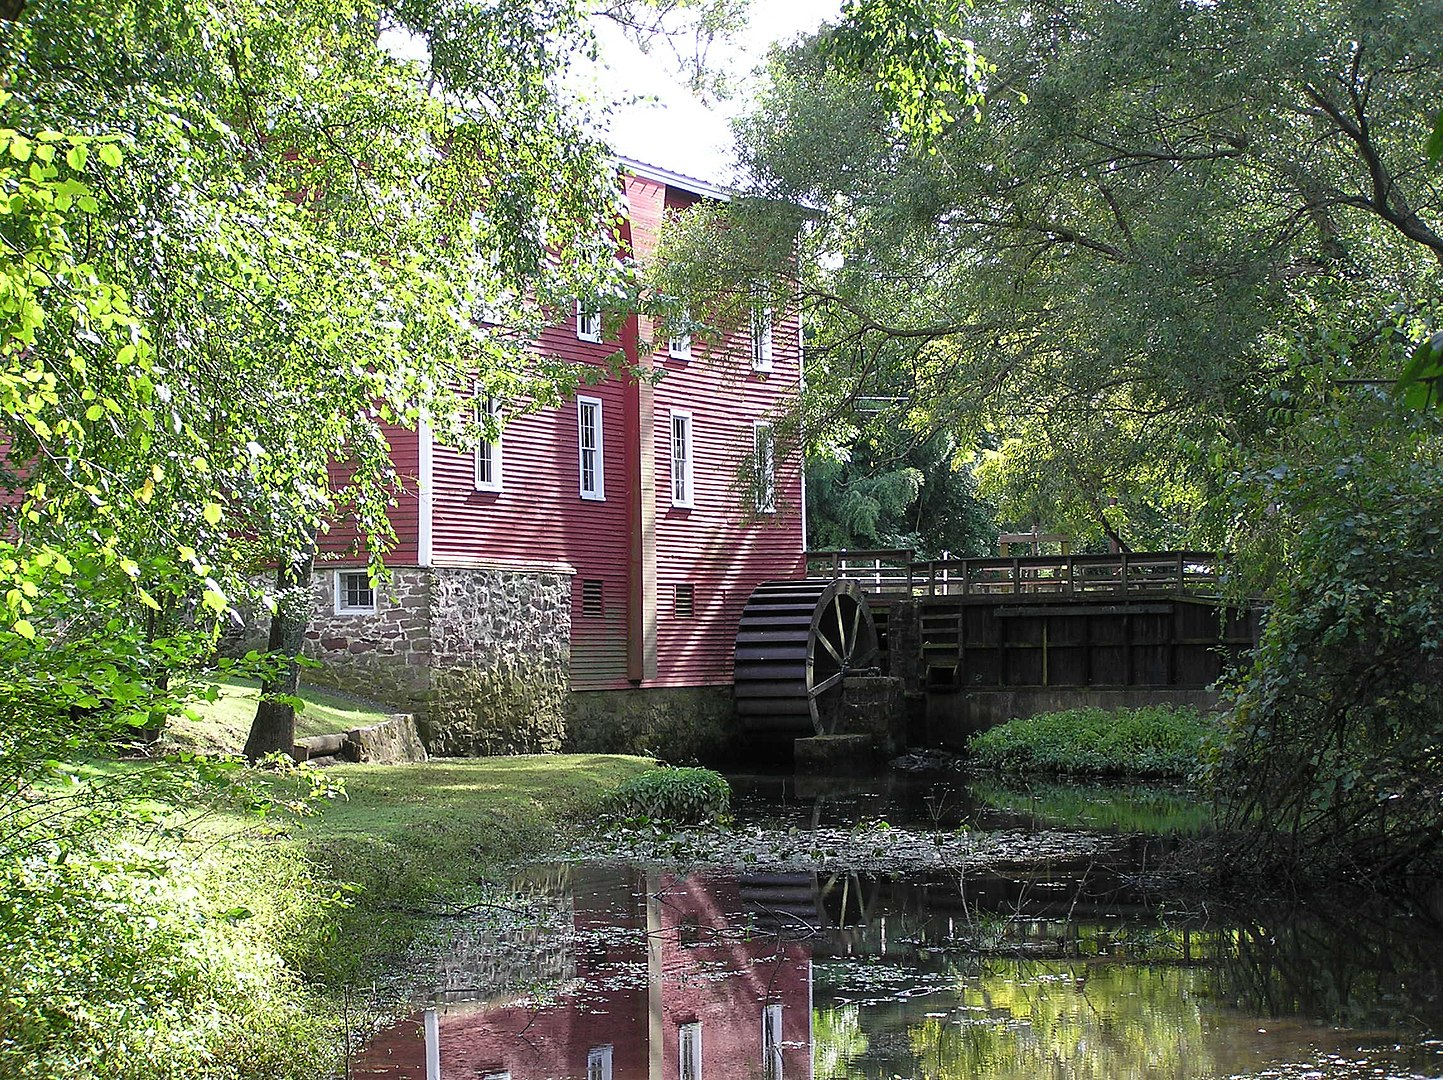 Kirby's Mill, formerly Haines 1 Mill, now operated by the Medford Historical Society.